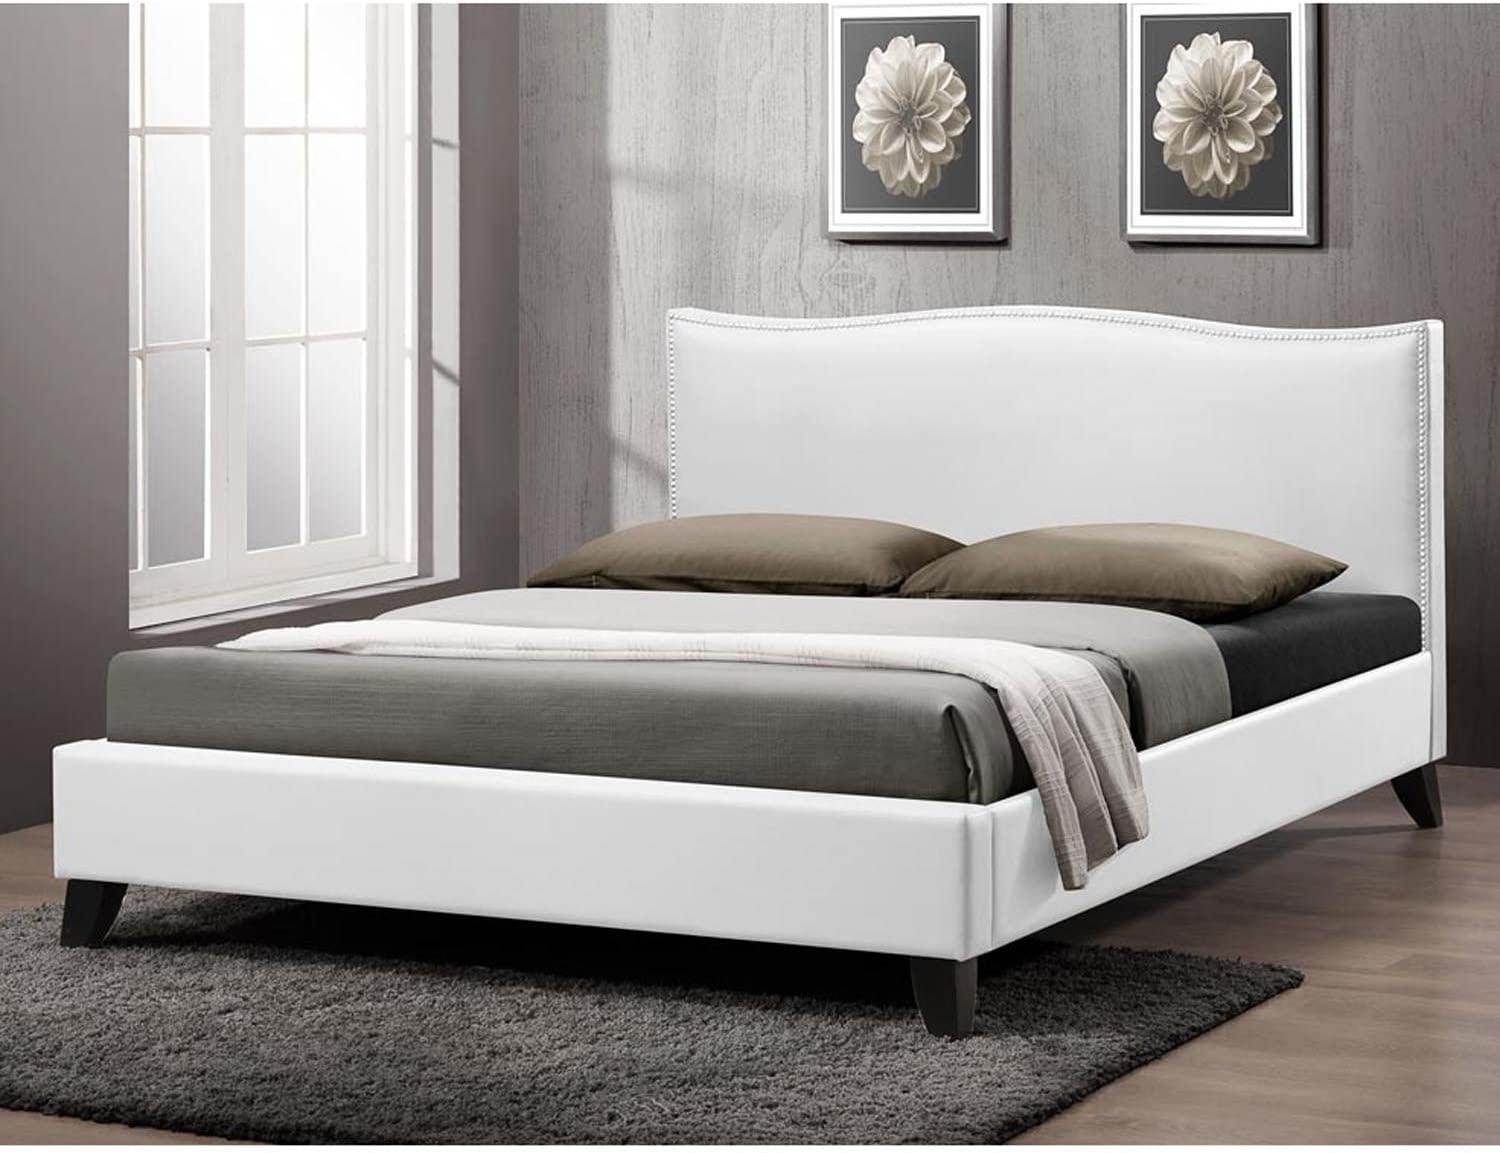 Choosing the Best Twin Mattress For Adults – Shopping Reviews